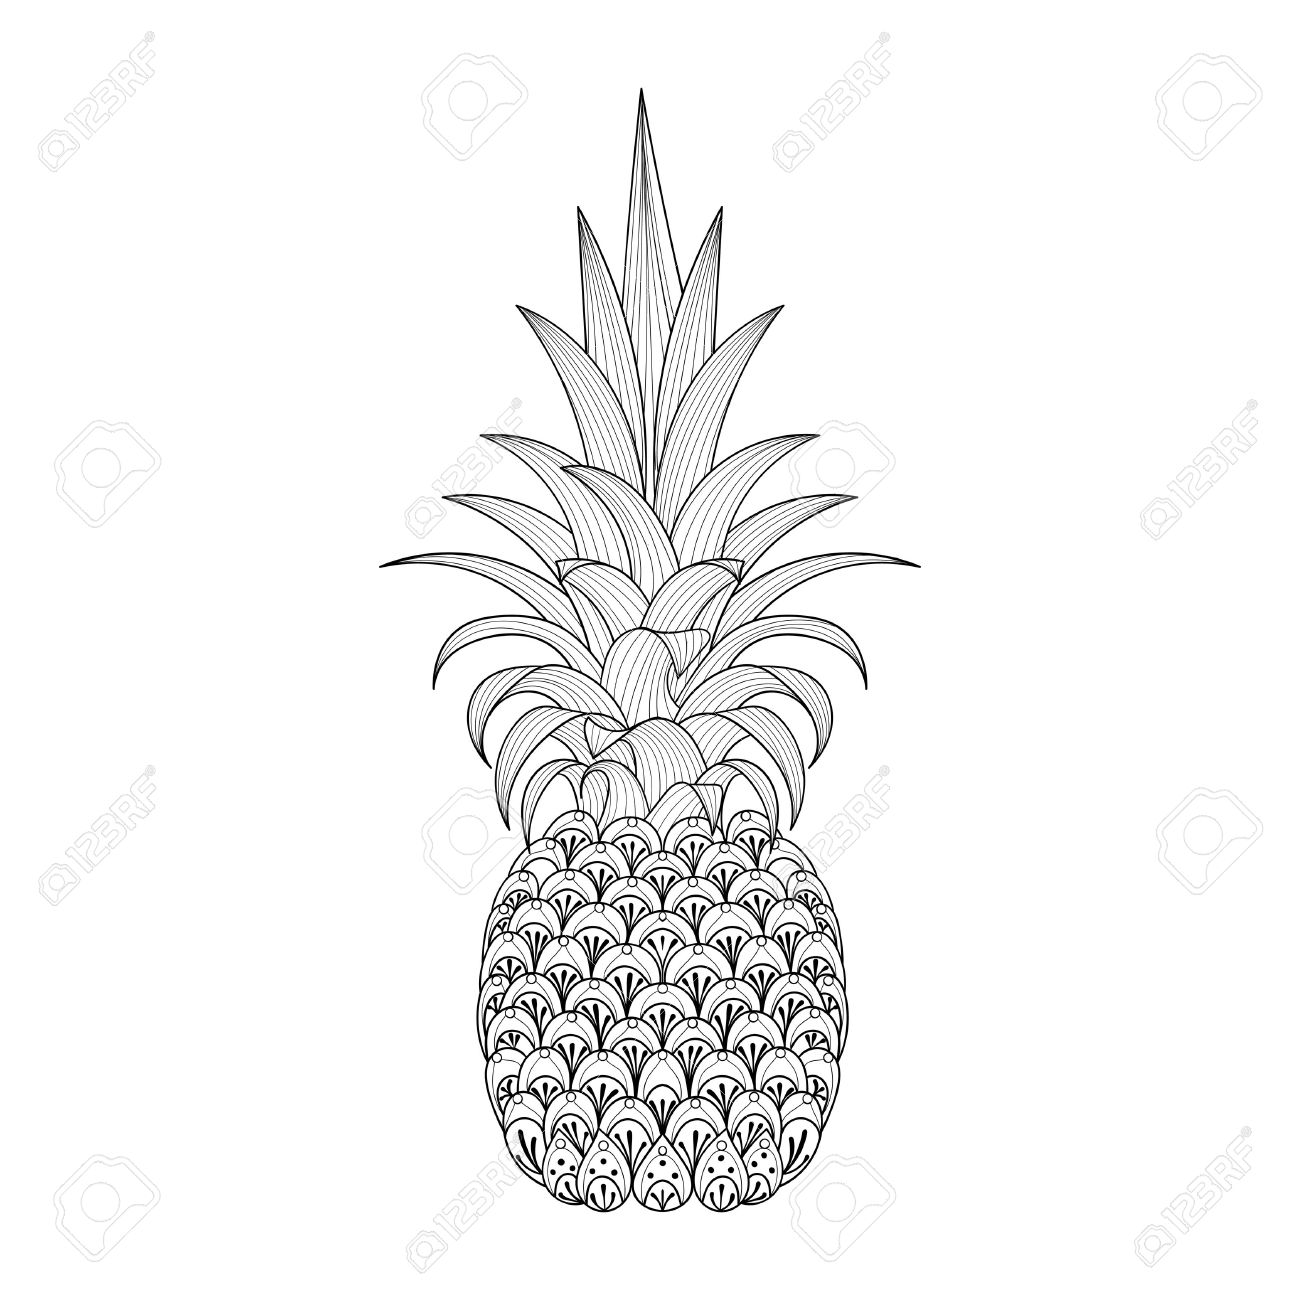 Hand Drawn Ornate Pineapple Tribal Exotic Fruit For Adult Anti Stress Coloring Pages Ethnic